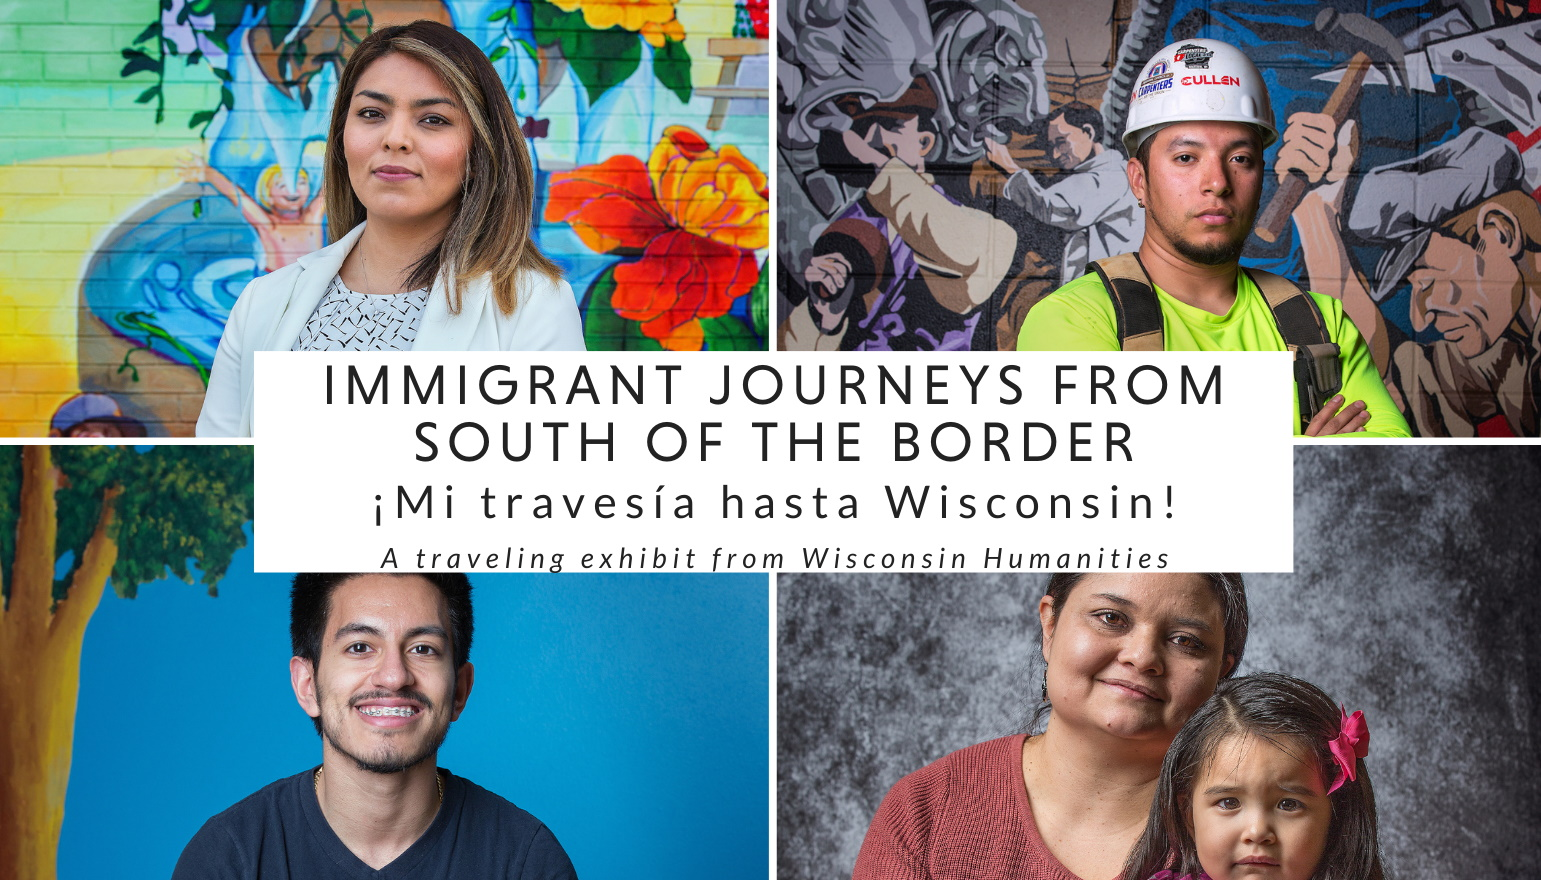 photos and text Immigrant Journeys from South of the Border